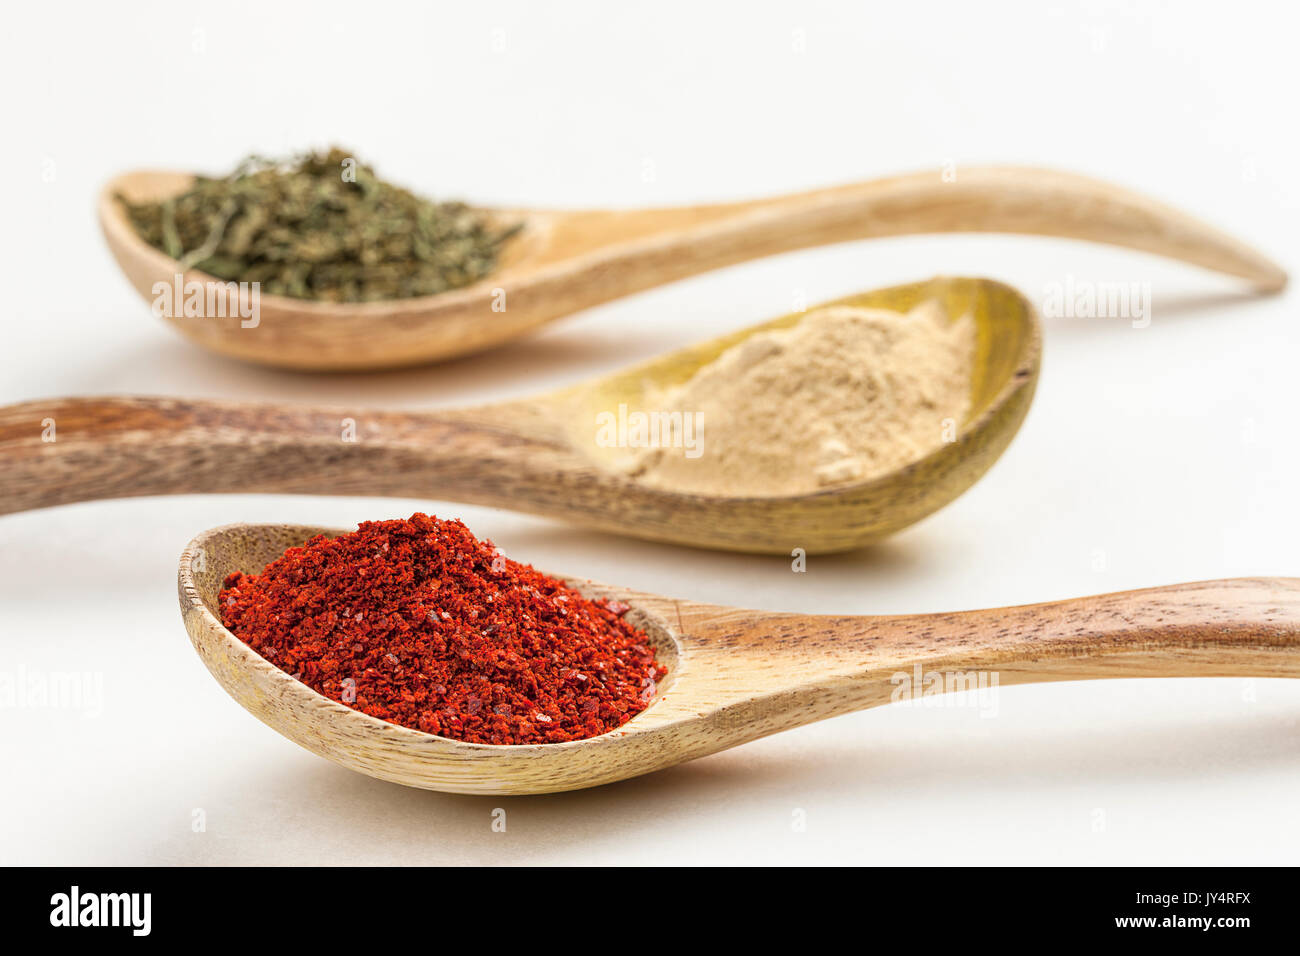 A close up of wooden spoons filled with red pepper powder, garlic powder, and basil leaves. - Stock Image